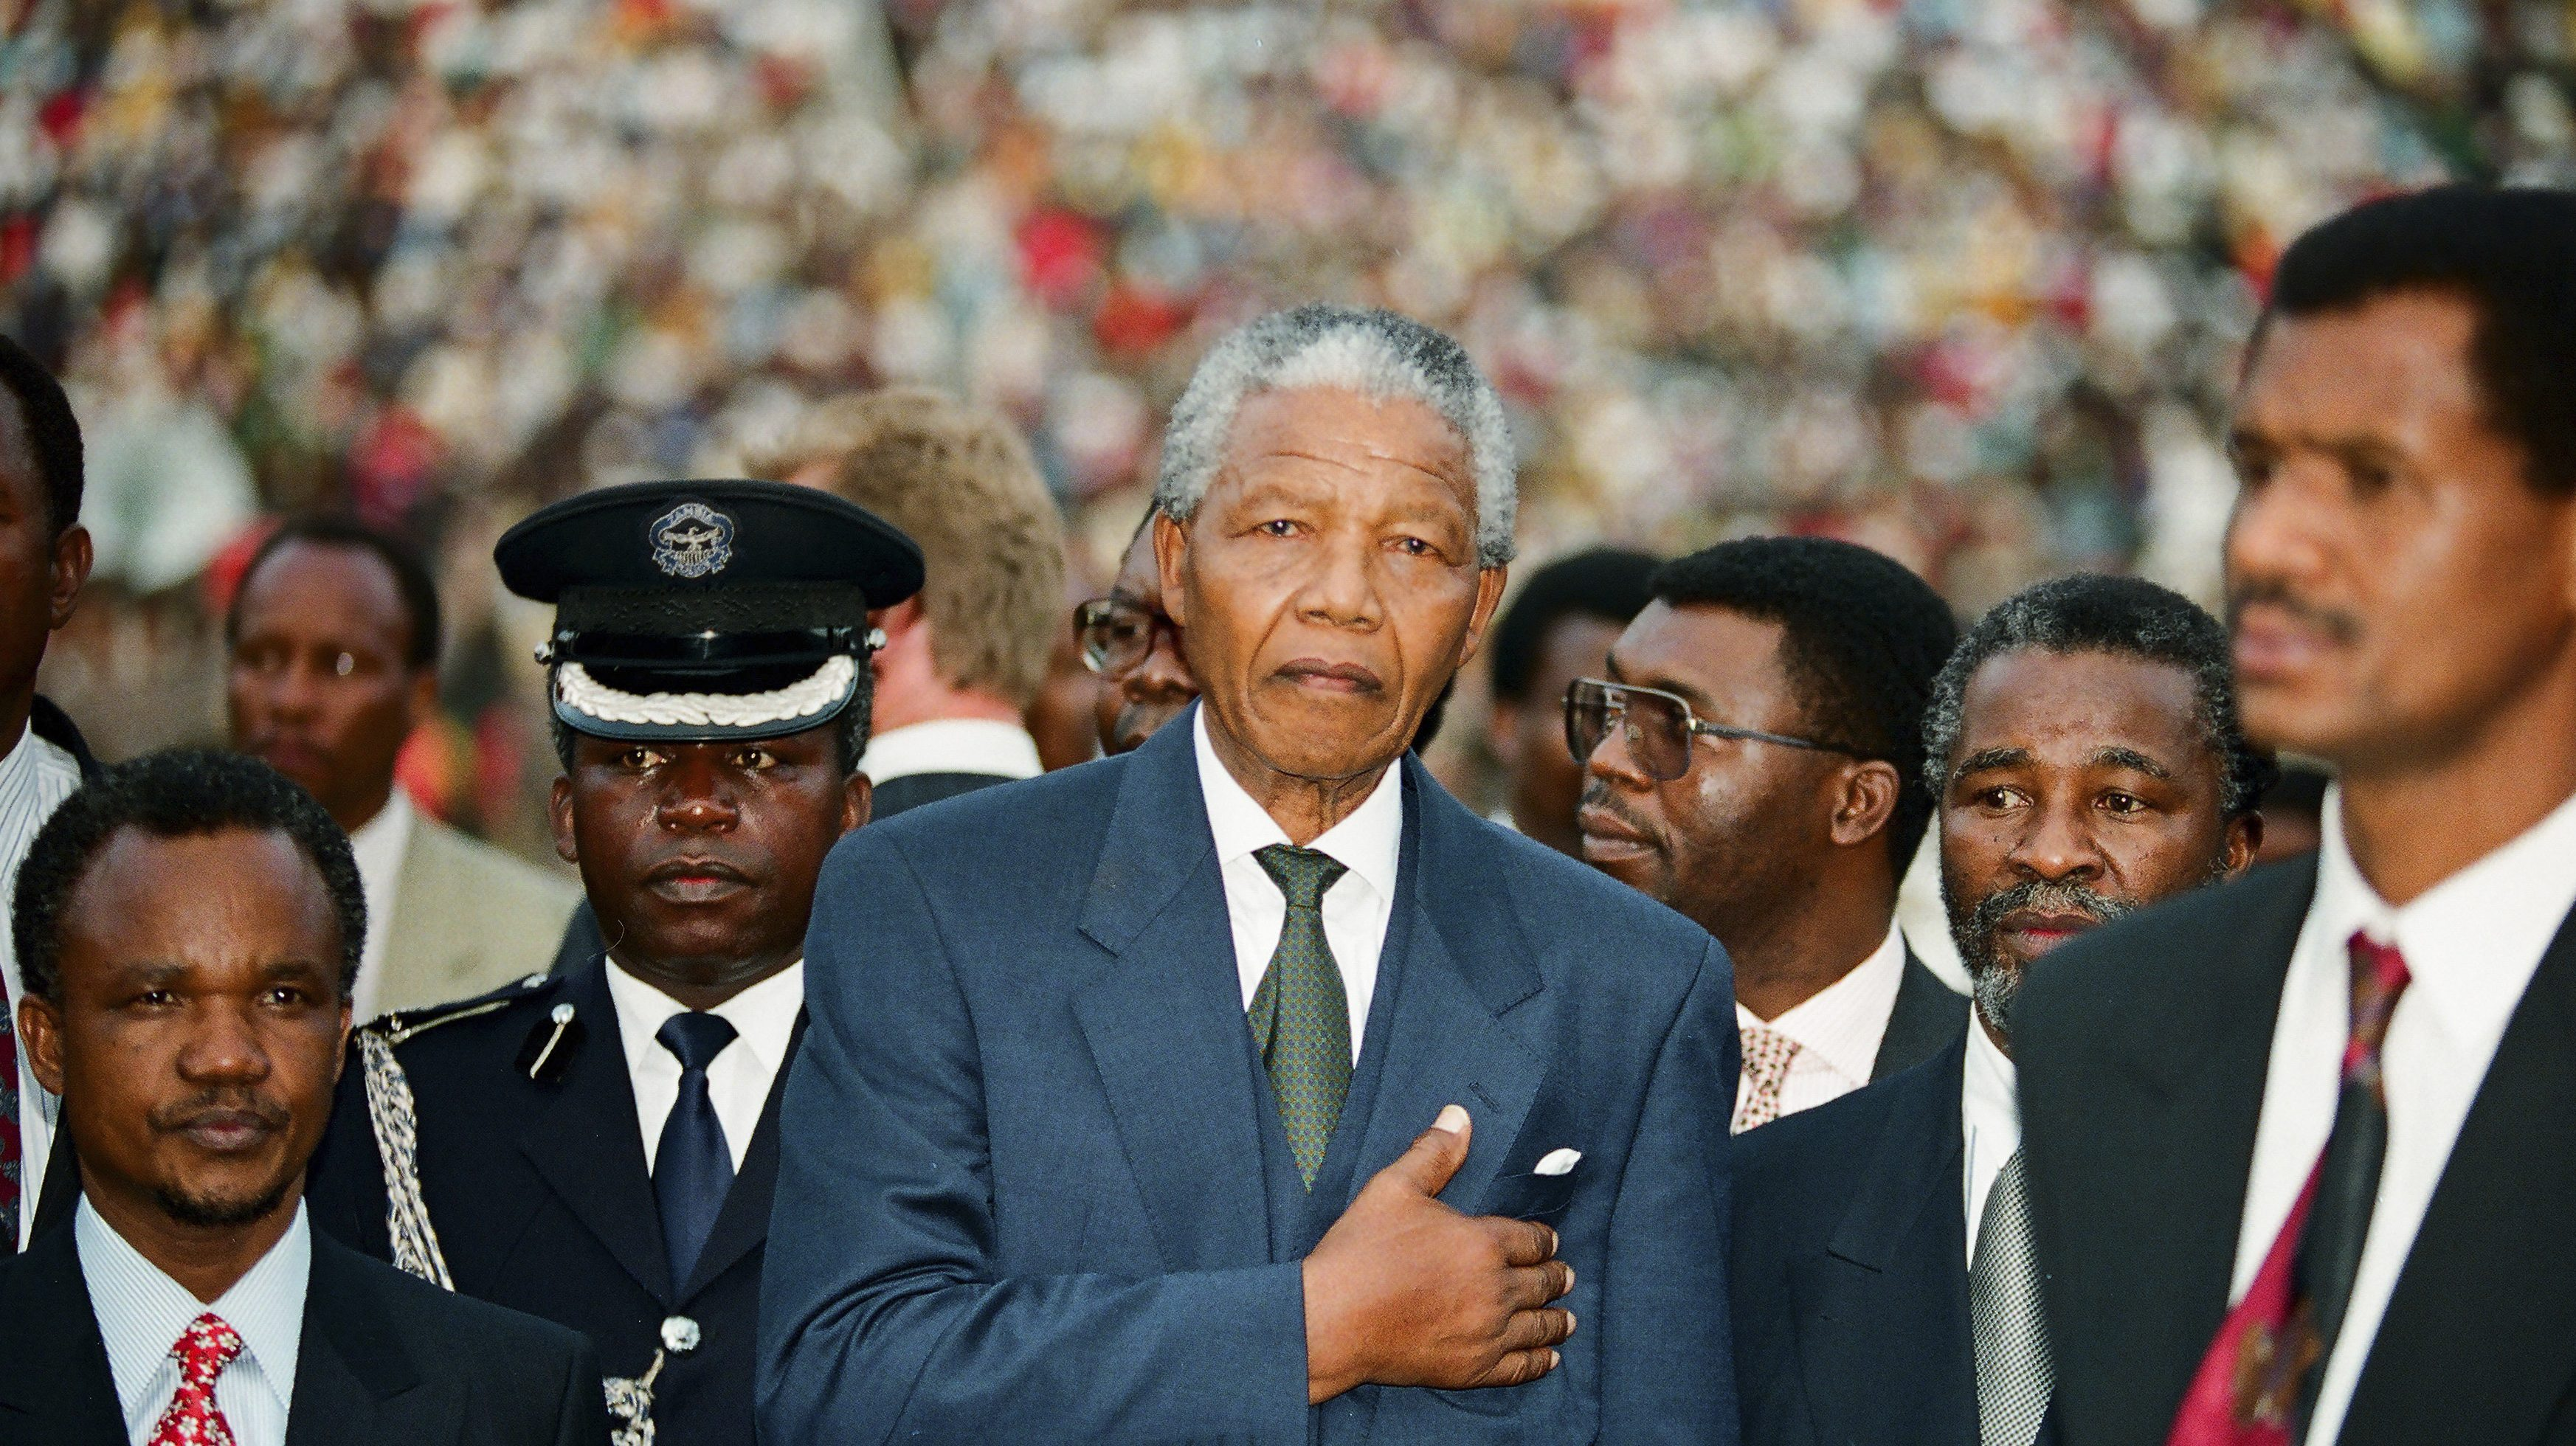 The newly sworn in first black President of South Africa Nelson Mandela keeps his hand on his hart as he listens to the national anthem near the Union building in Pretoria, May 10, 1994.